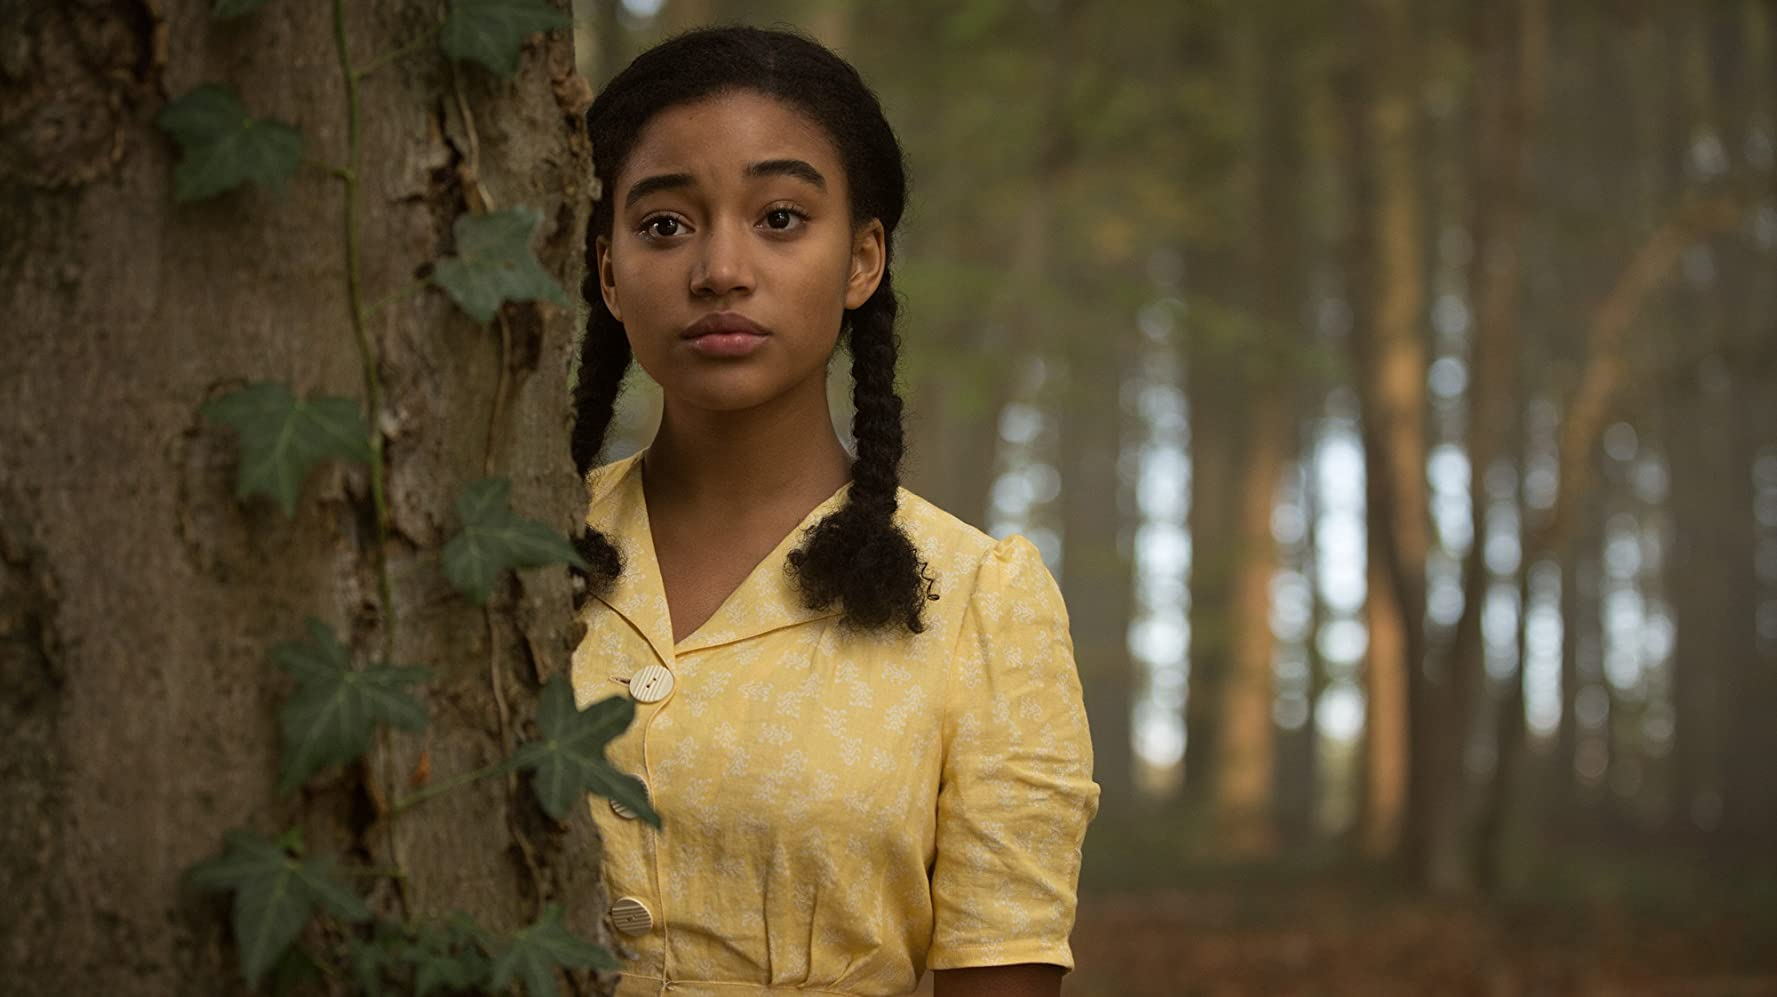 Amandla Stenberg in Where Hands Touch (2018)